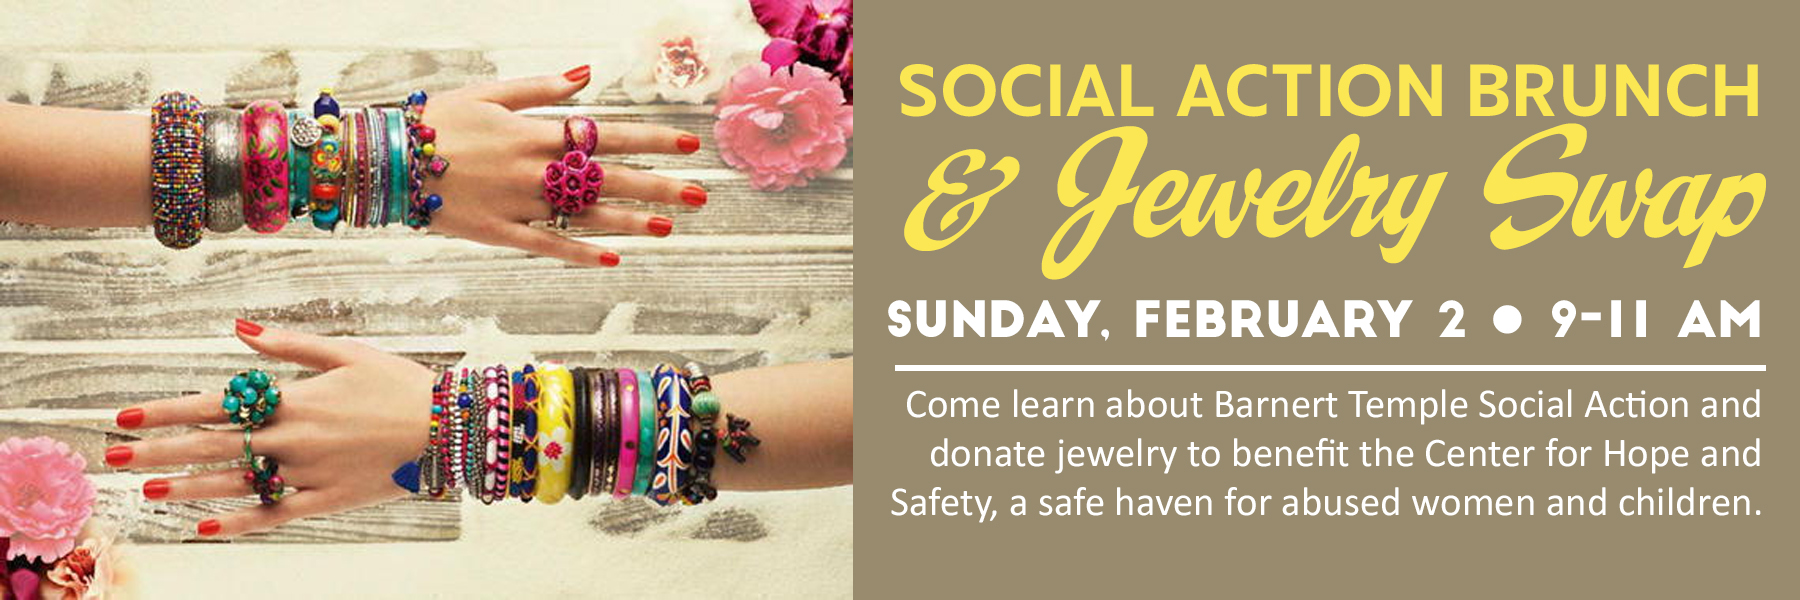 """<a href=""""https://www.barnerttemple.org/event/social-action-jewelry-swap.html""""                                     target="""""""">                                                                 <span class=""""slider_title"""">                                     Learn About Social Action at Barnert                                </span>                                                                 </a>                                                                                                                                                                                       <span class=""""slider_description"""">Come learn about Barnert Temple Social Action and how you can become involved!  Also, bring jewelry to swap and donate to The Center for Hope and Safety, a safe haven for abused women and children.  Click above for details and to RSVP.</span>"""